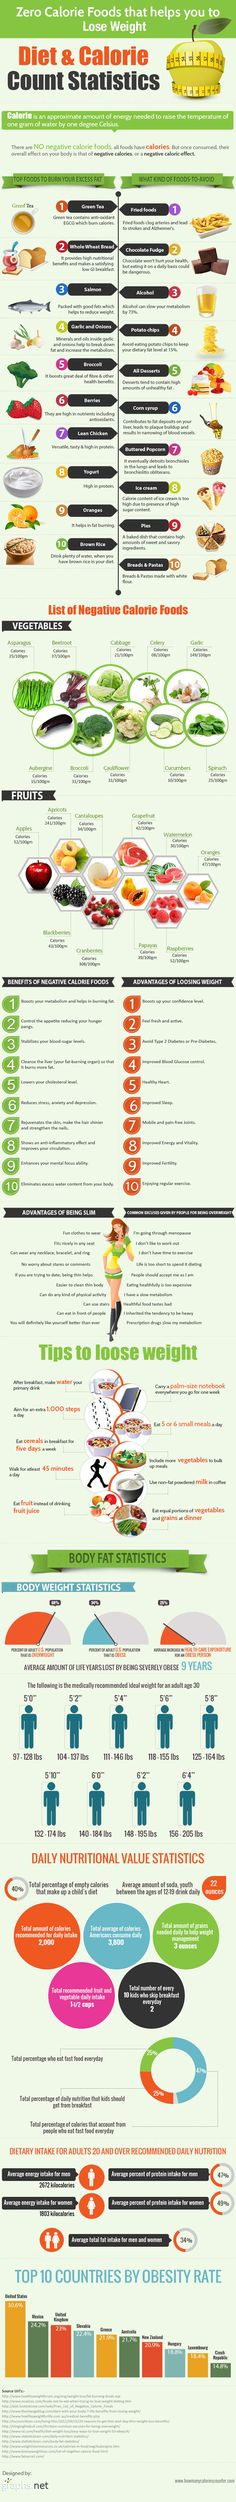 Zero calorie foods that help you lose weight [Infographic] - #diabetesweightloss